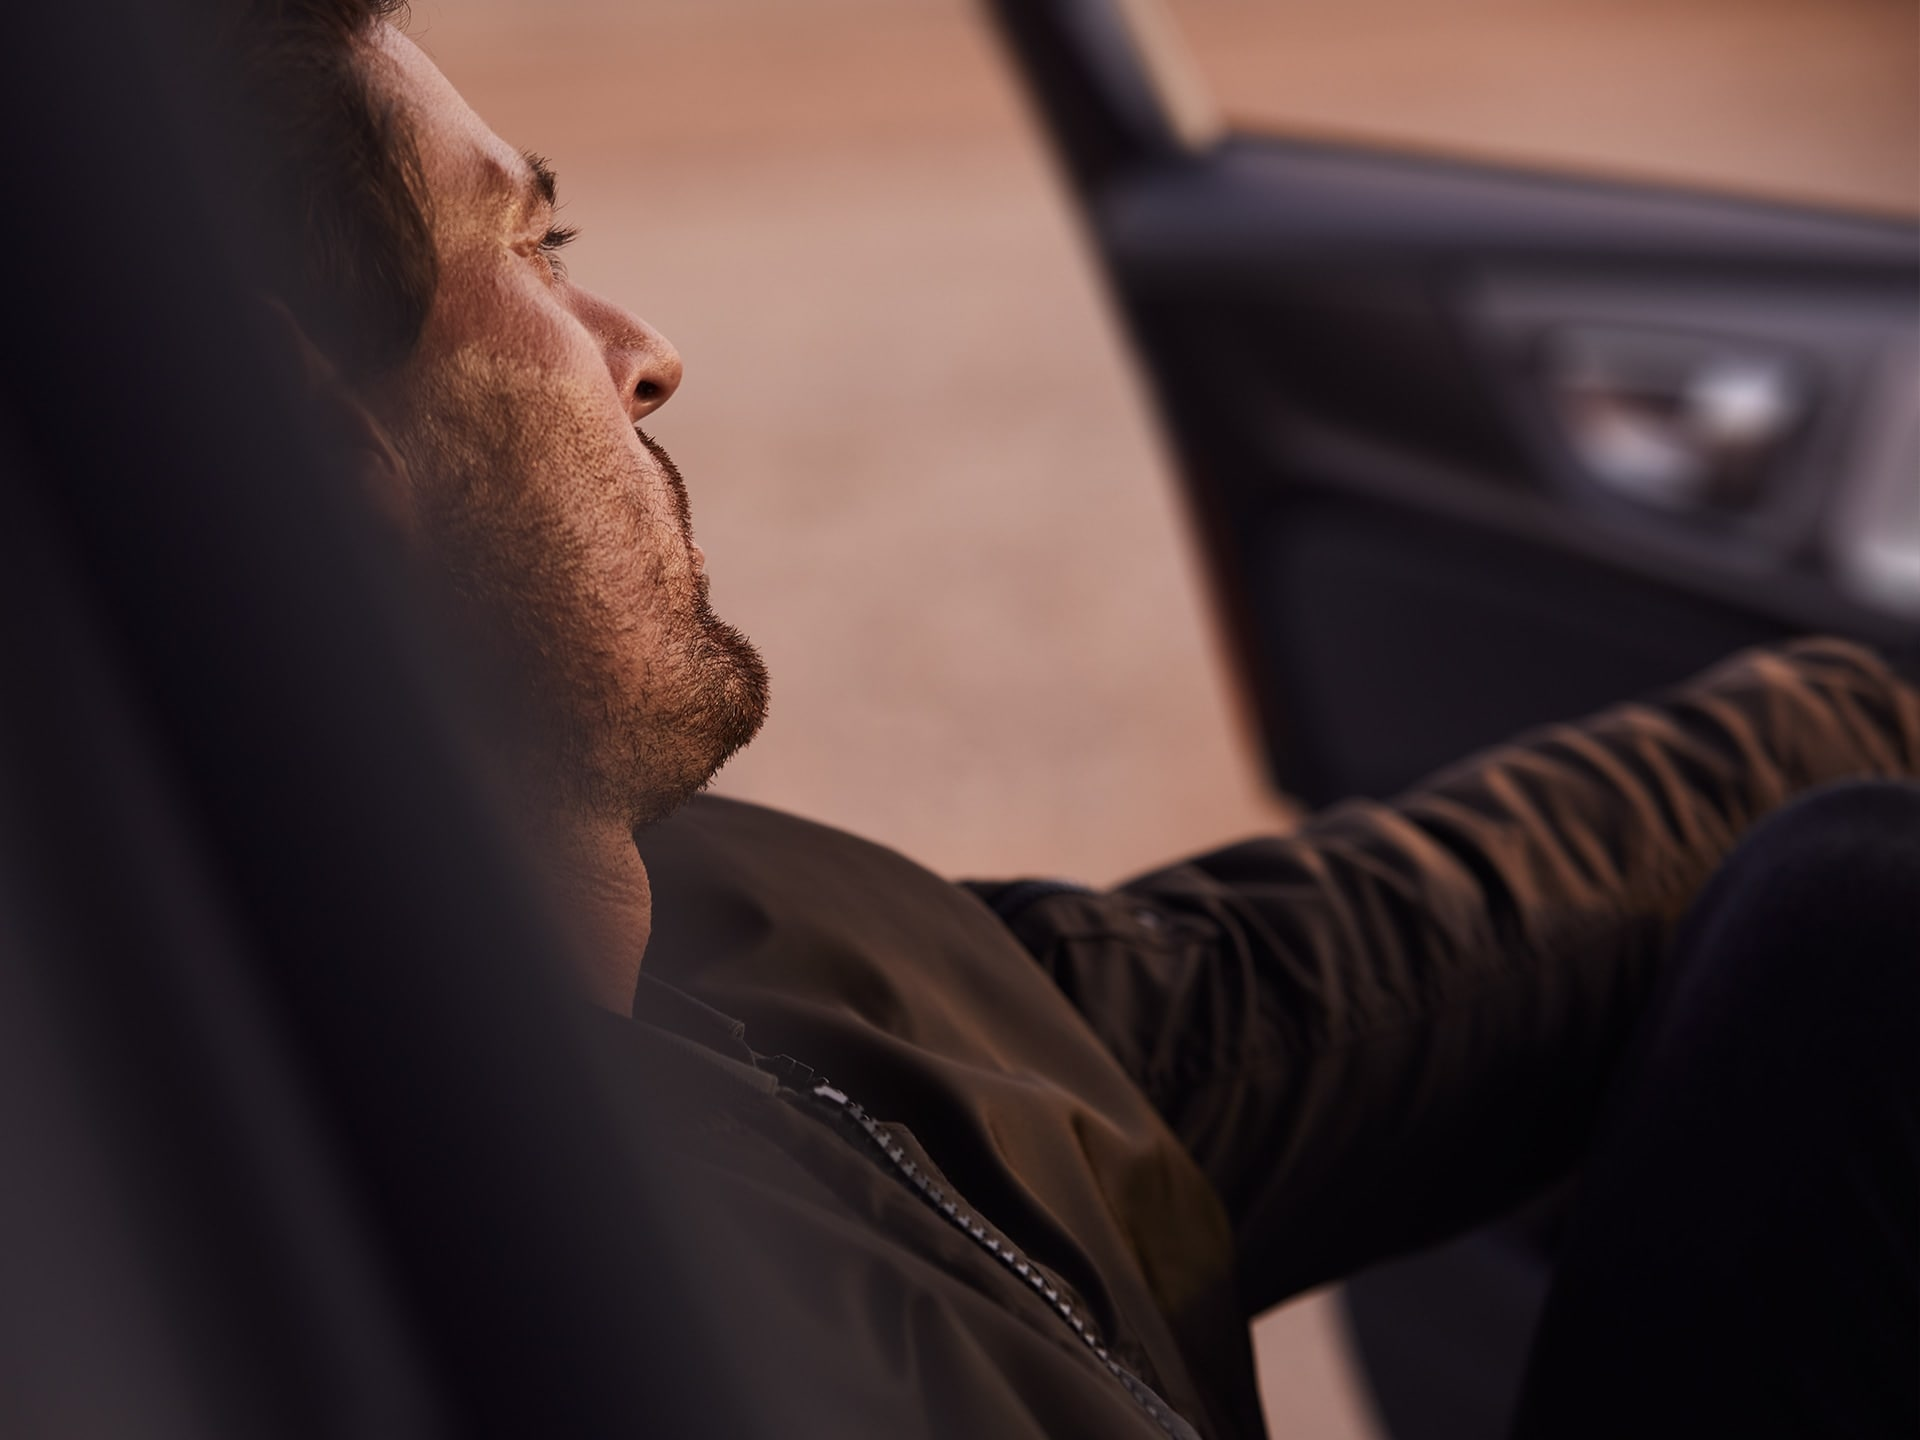 A man sitting in his car with the door open, looking out